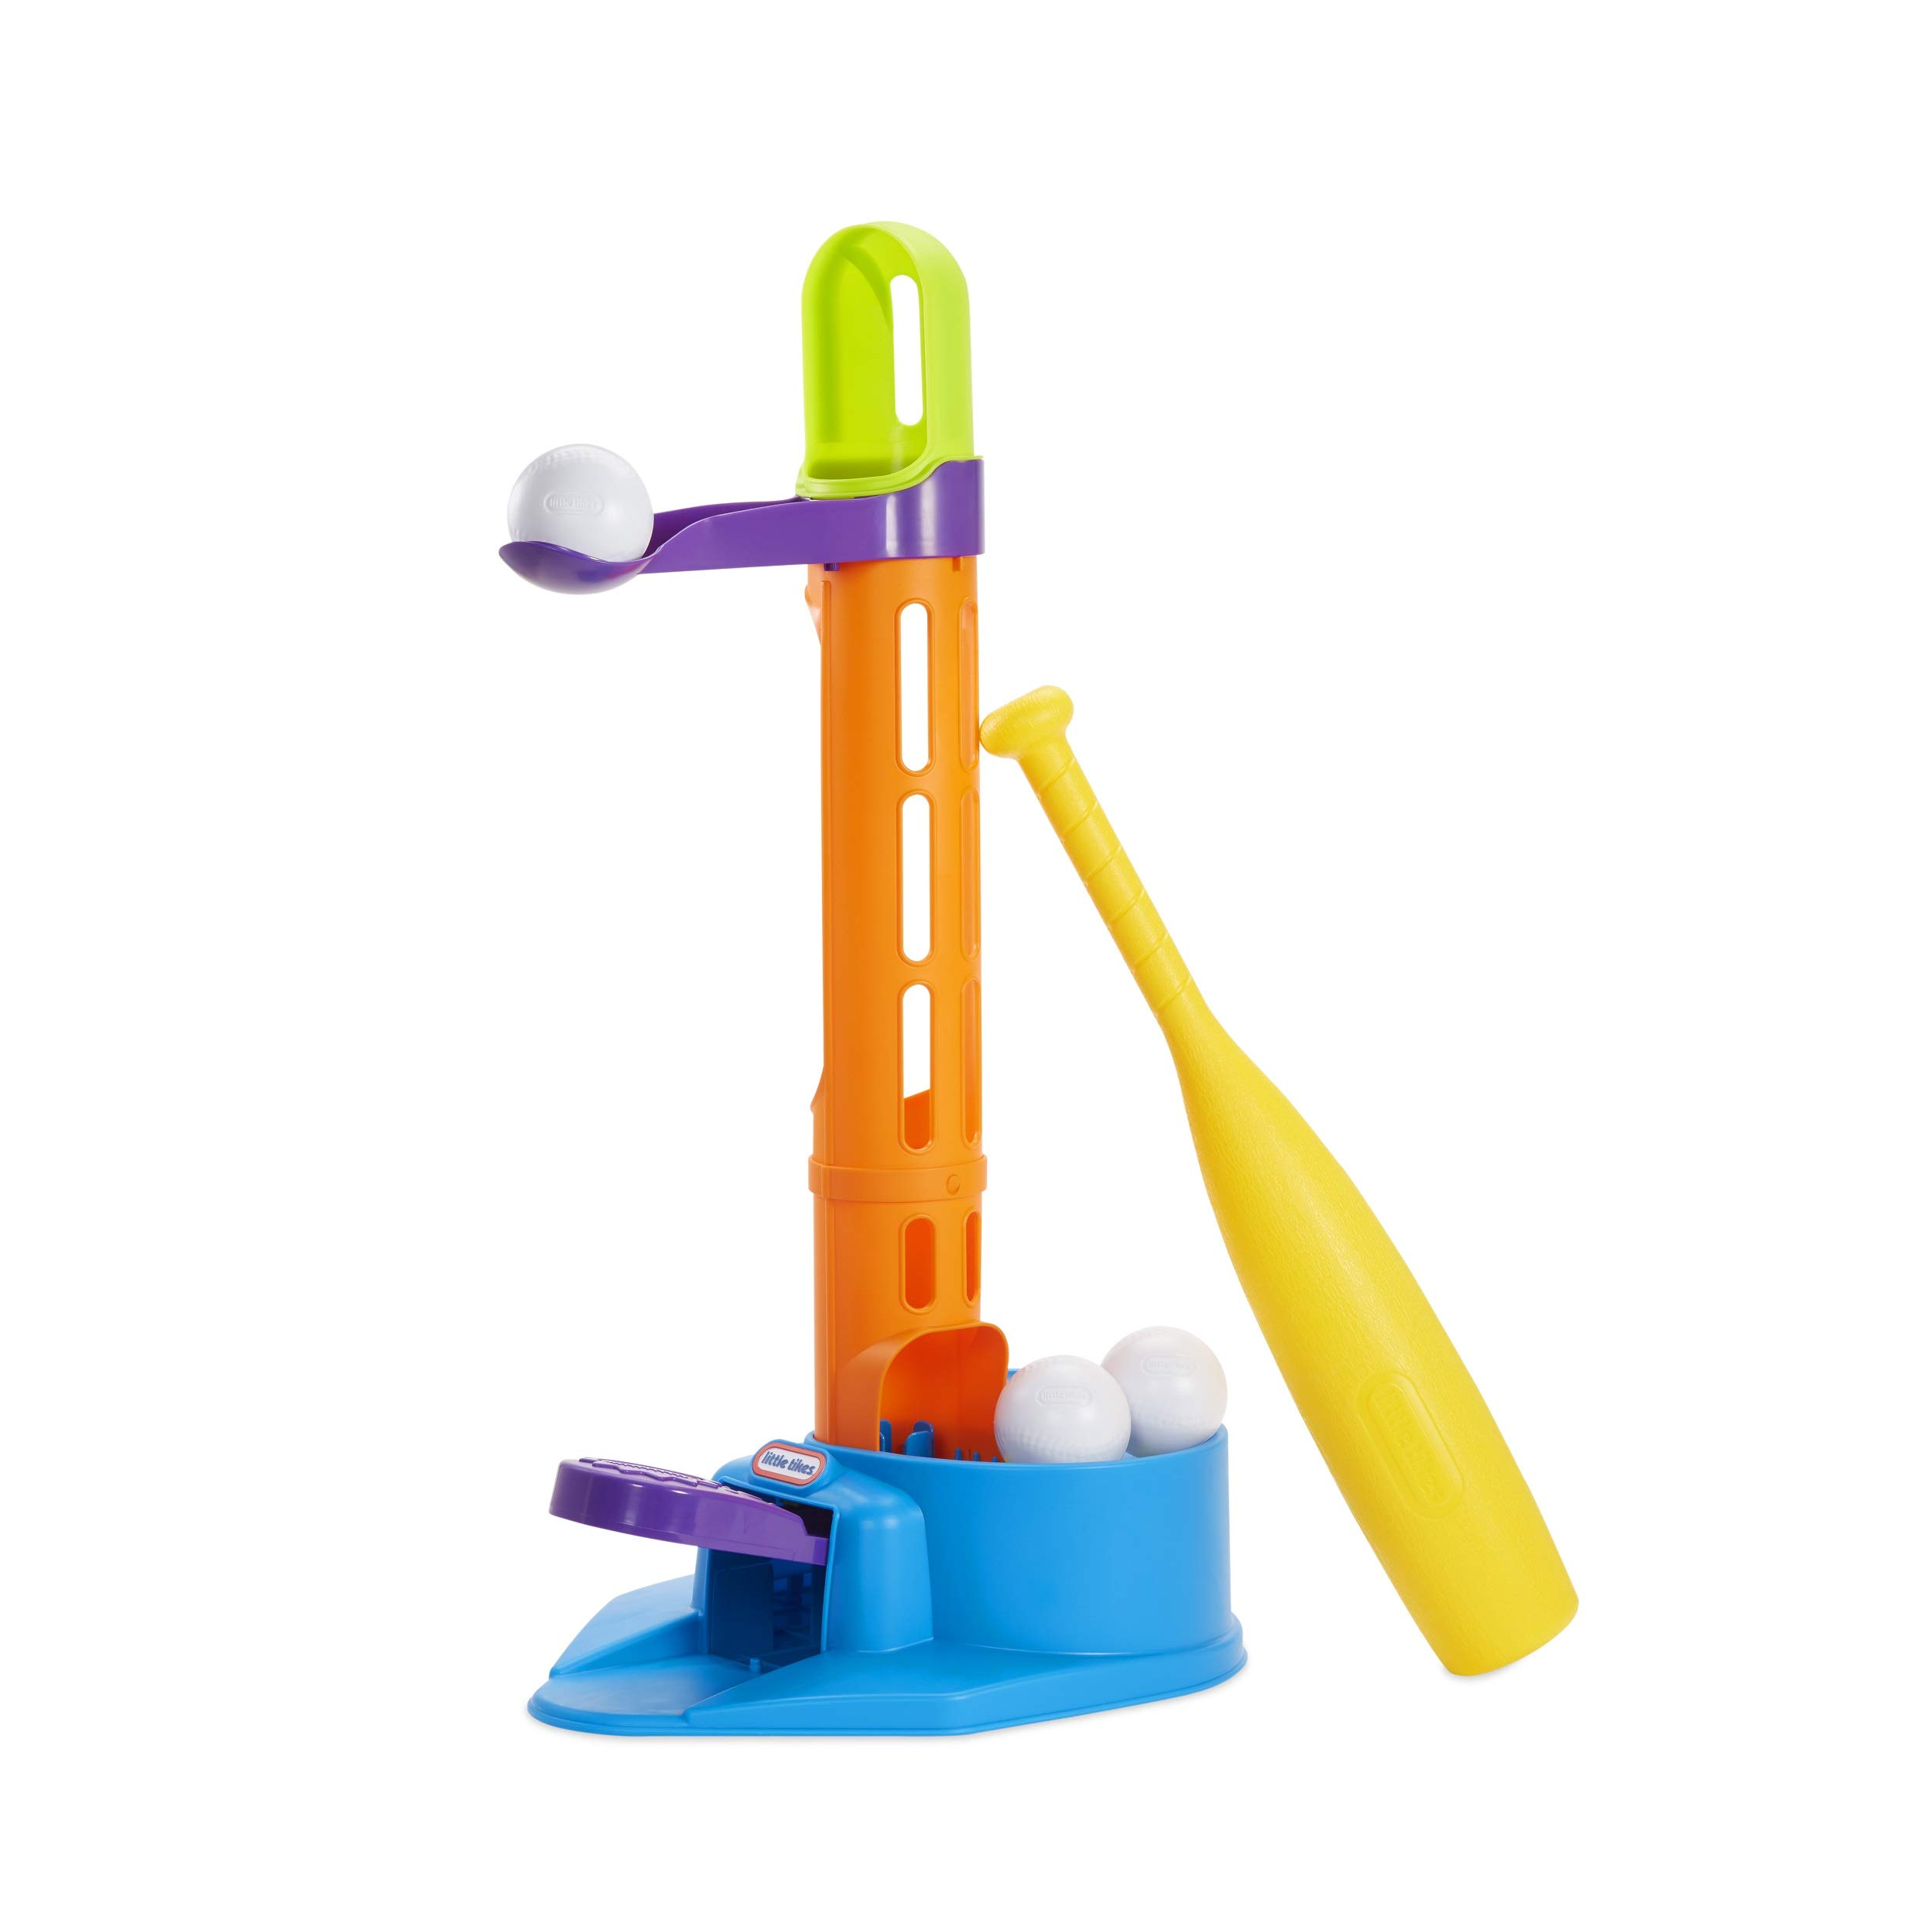 Little Tikes 3-in-1 Triple Splash T-Ball Set with 3 Balls by Little Tikes